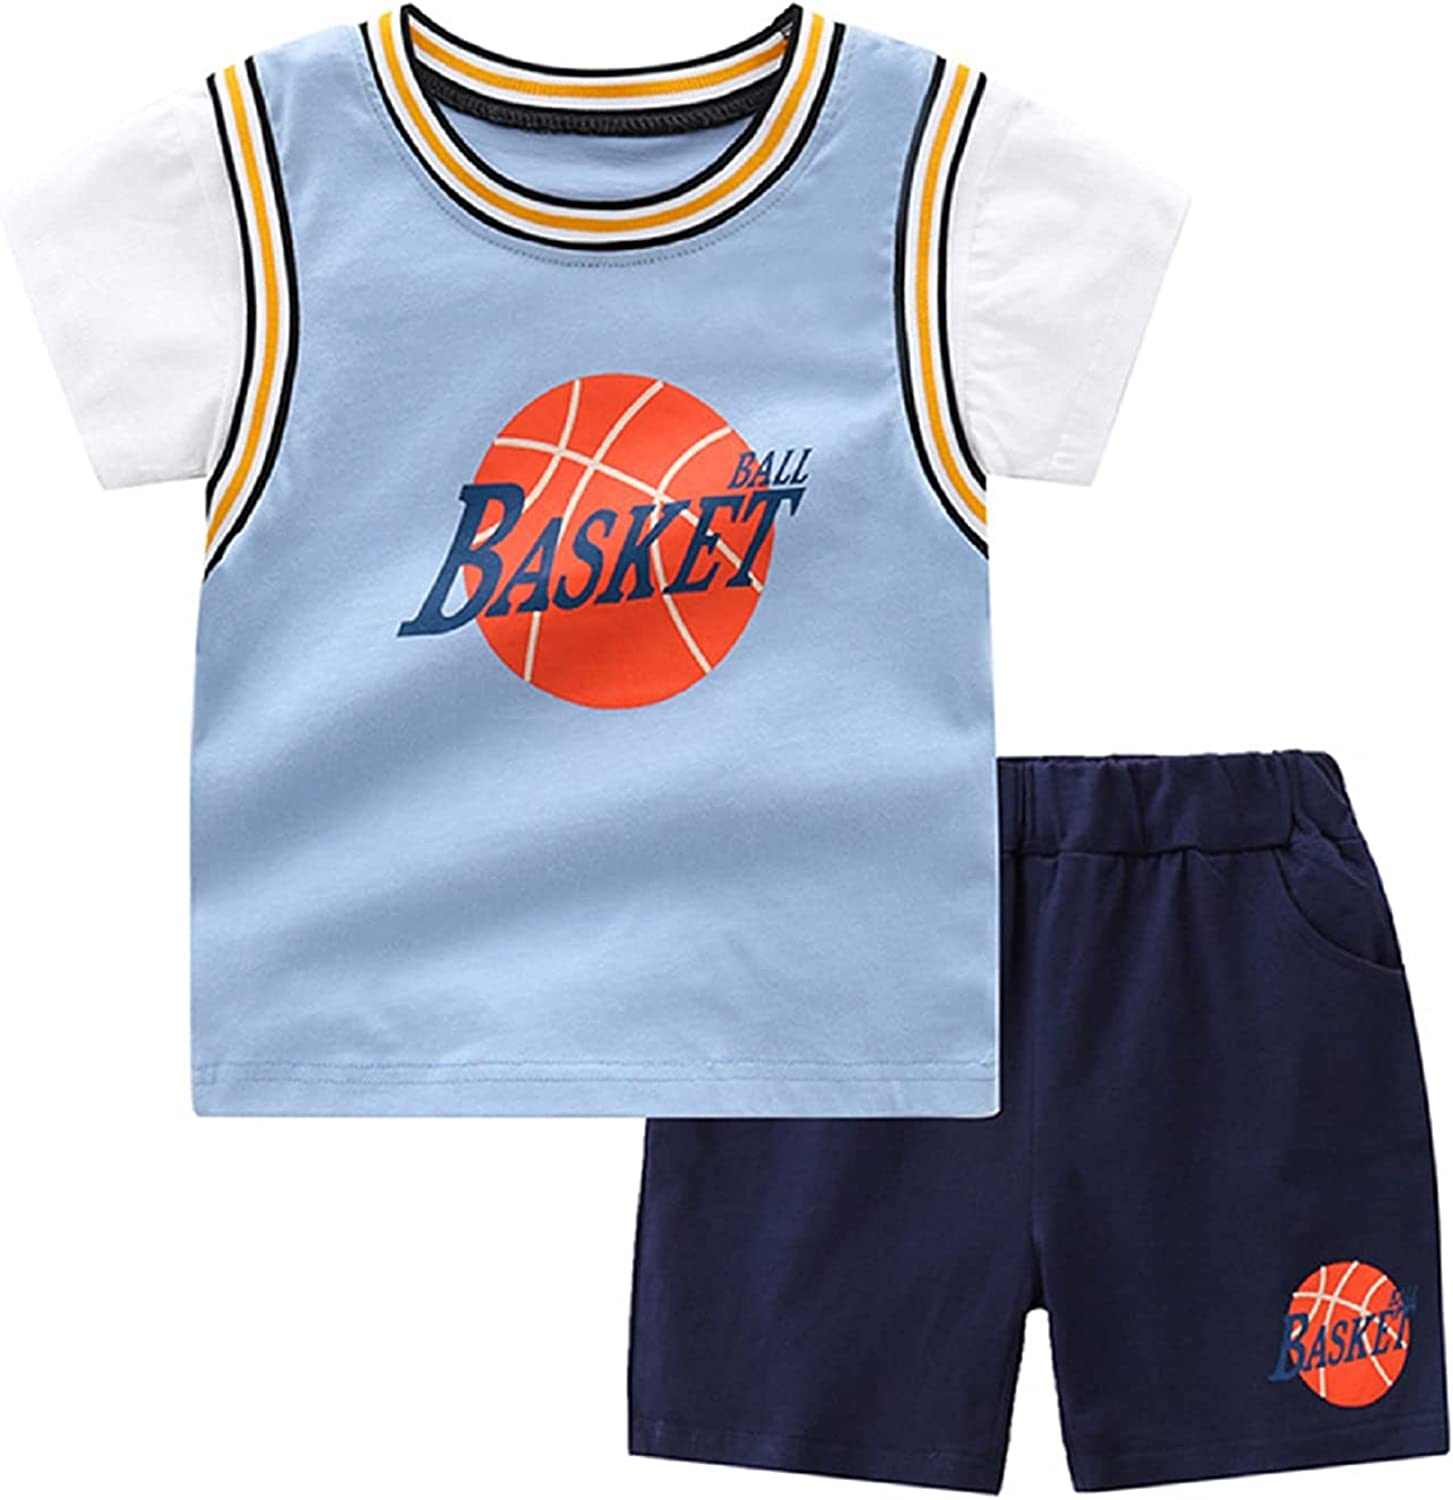 WINZIK Toddler Boys Basketball Outfit Short Sleeve Athletic T-Shirt Tops & Shorts Baby Kids Sports Suit Summer Clothes 1-7T